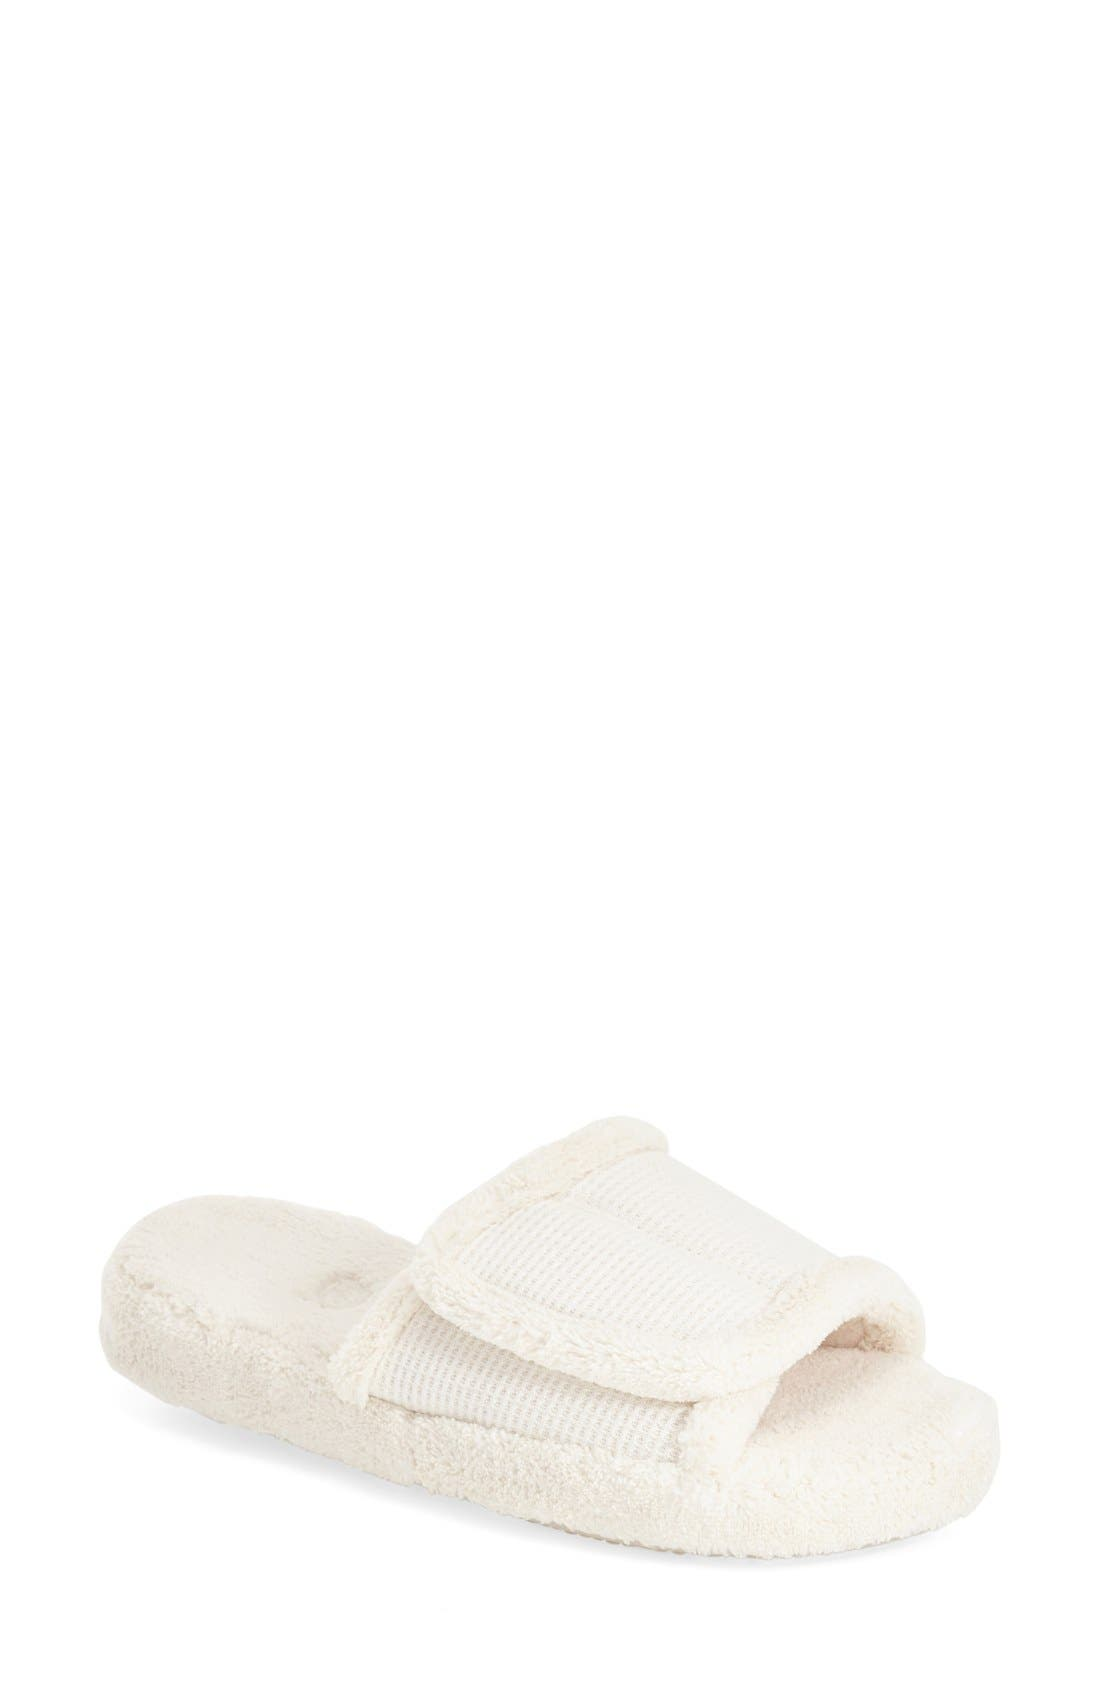 'Waffle Spa Slide' Slipper,                             Main thumbnail 1, color,                             NATURAL